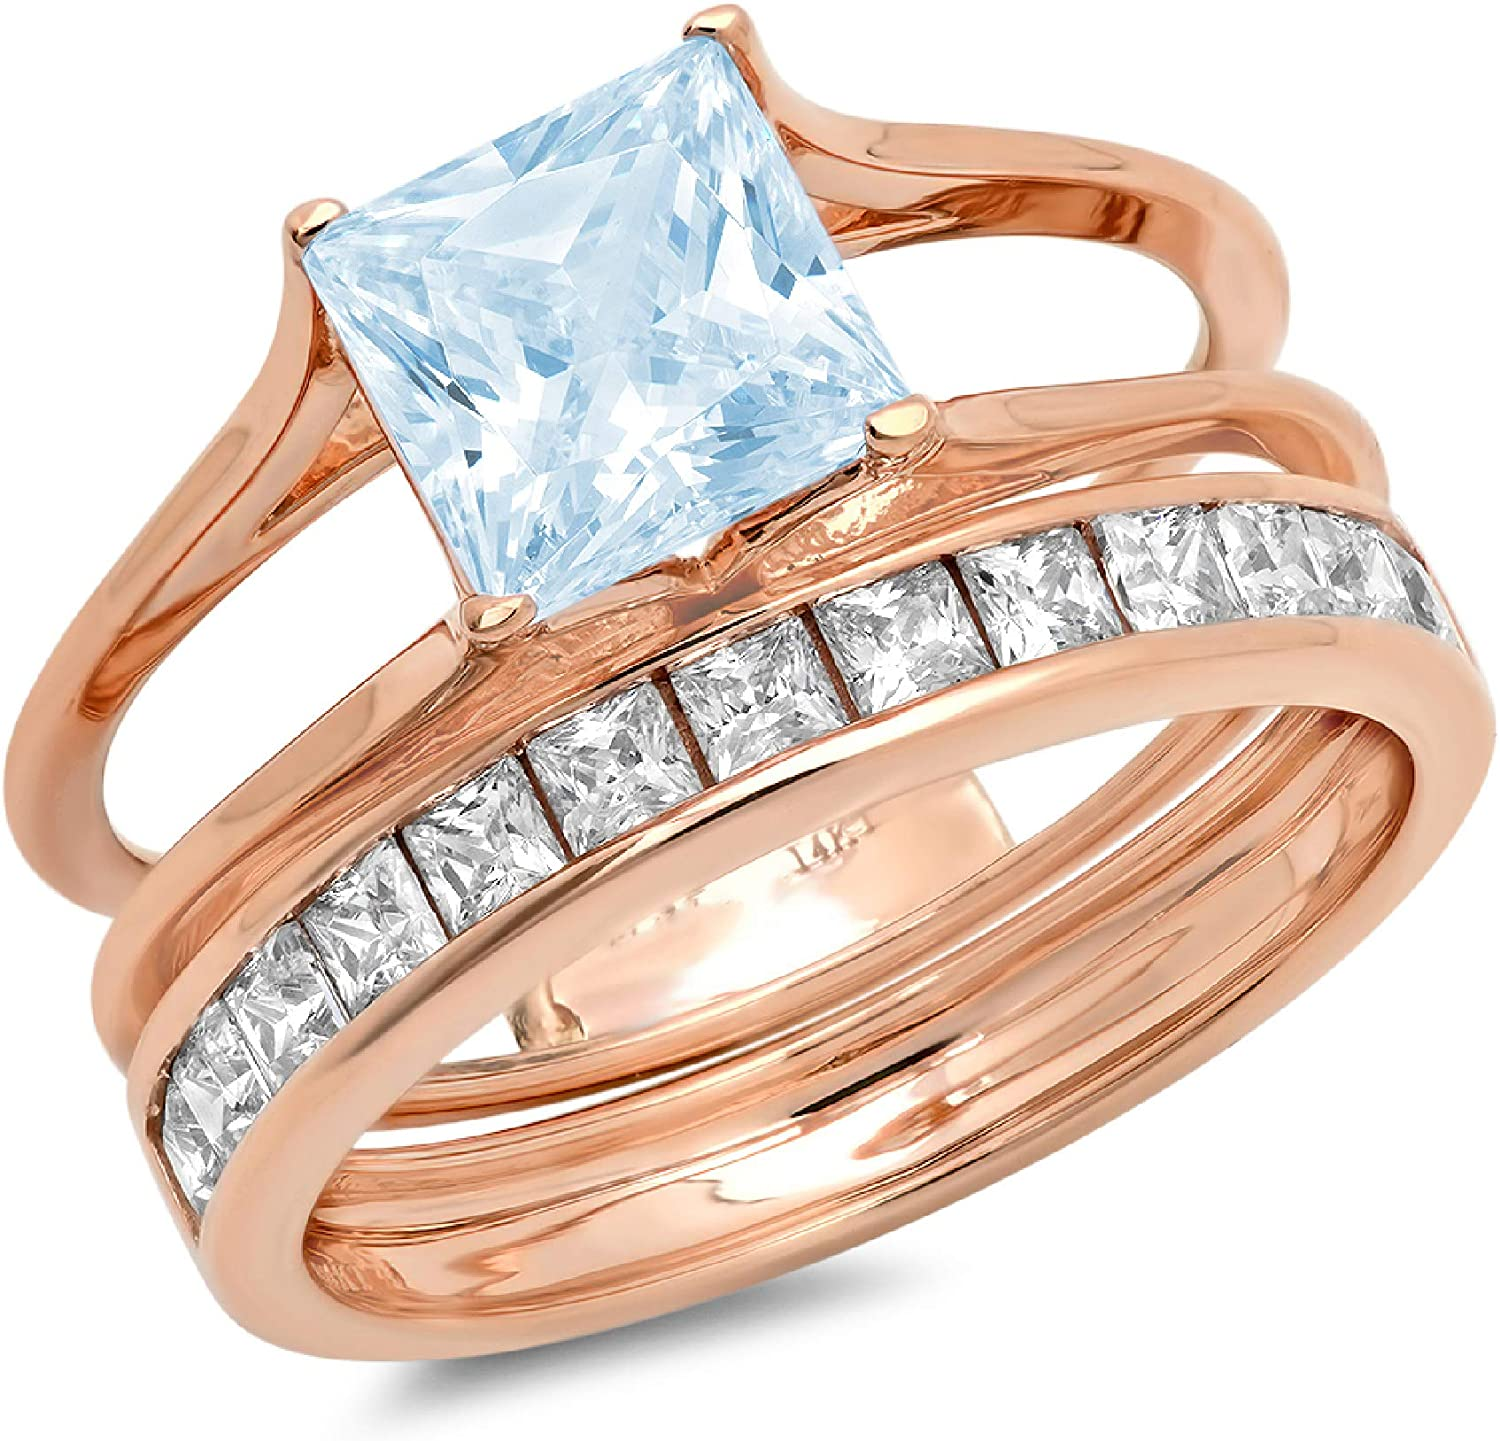 3.37ct Princess Cut Pave Solitaire with Accent Natural Sky Blue Topaz Designer Statement Classic Sliding Ring Band Set Real Solid 14k Rose Gold